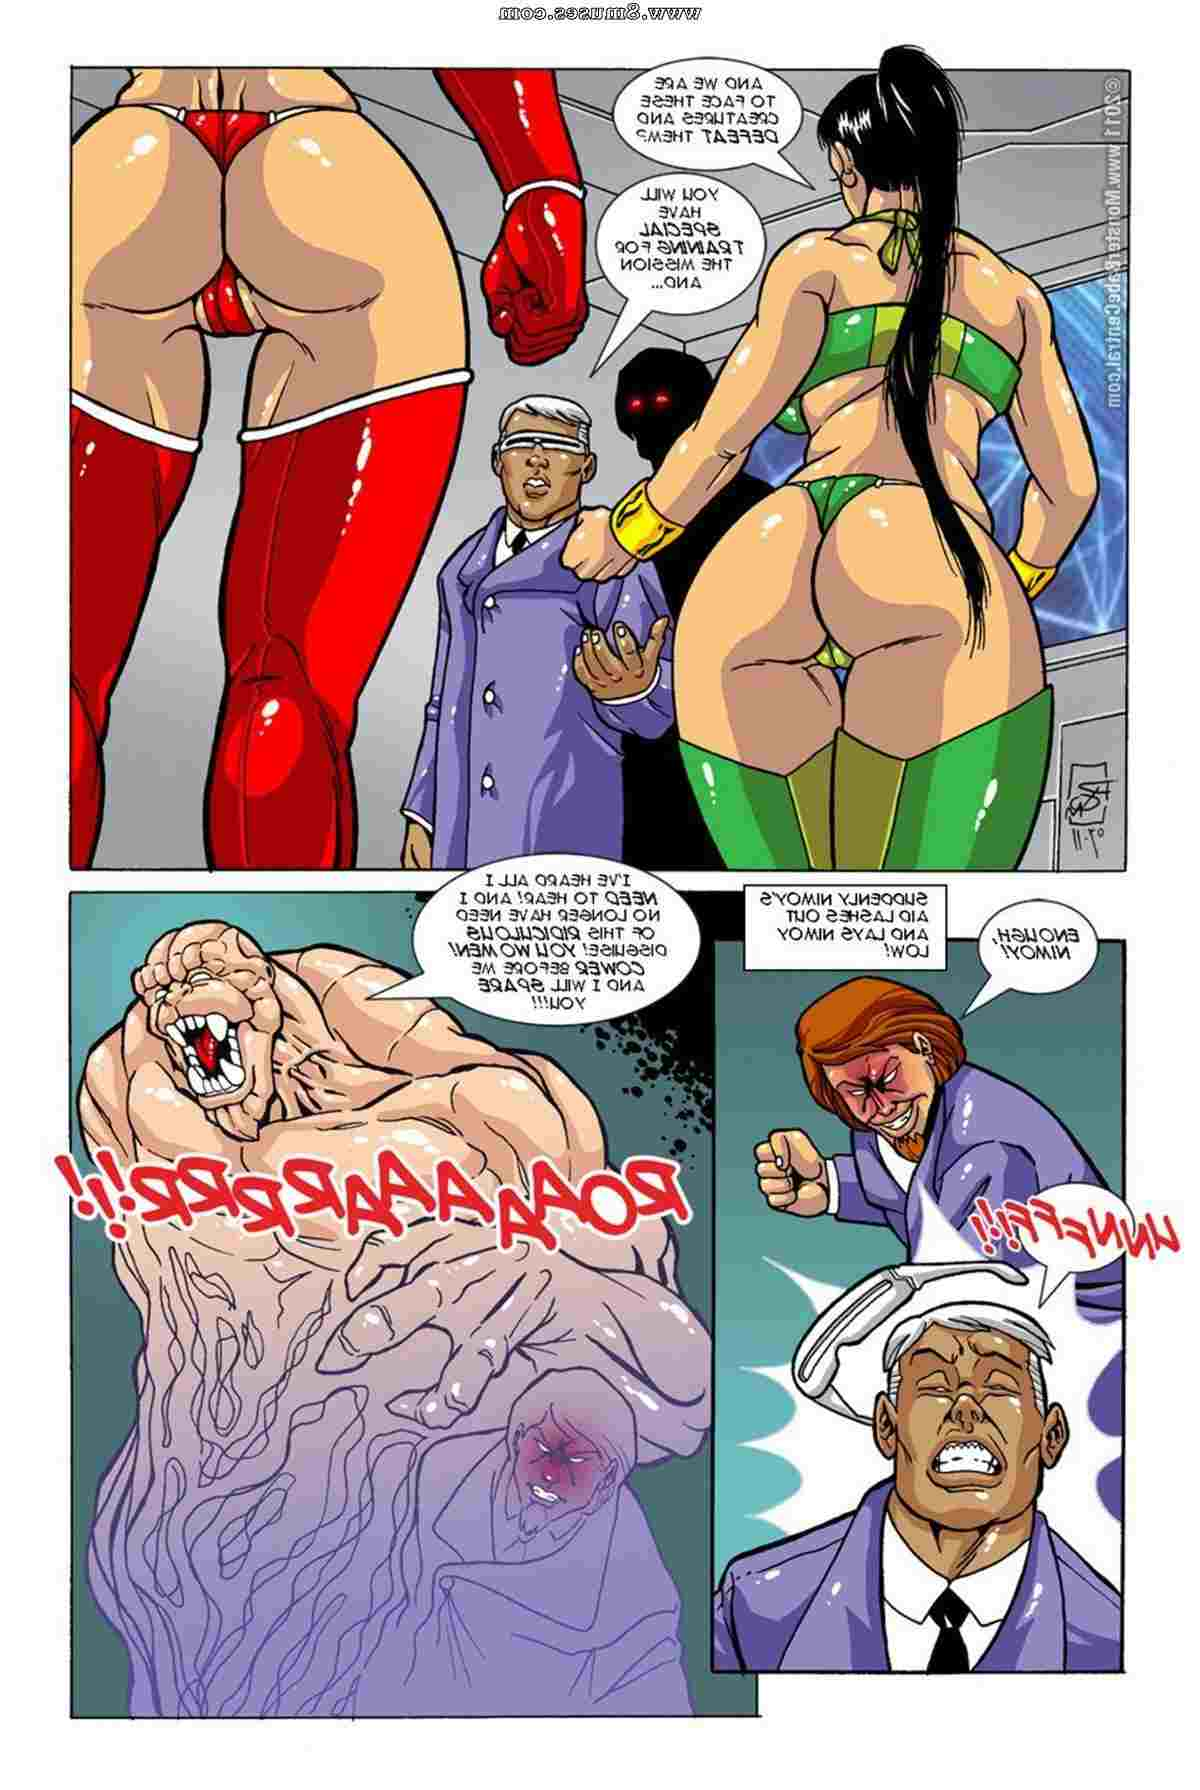 Central-Comics/Monster-Babe-Central/Omega-Fighters Omega_Fighters__8muses_-_Sex_and_Porn_Comics_53.jpg